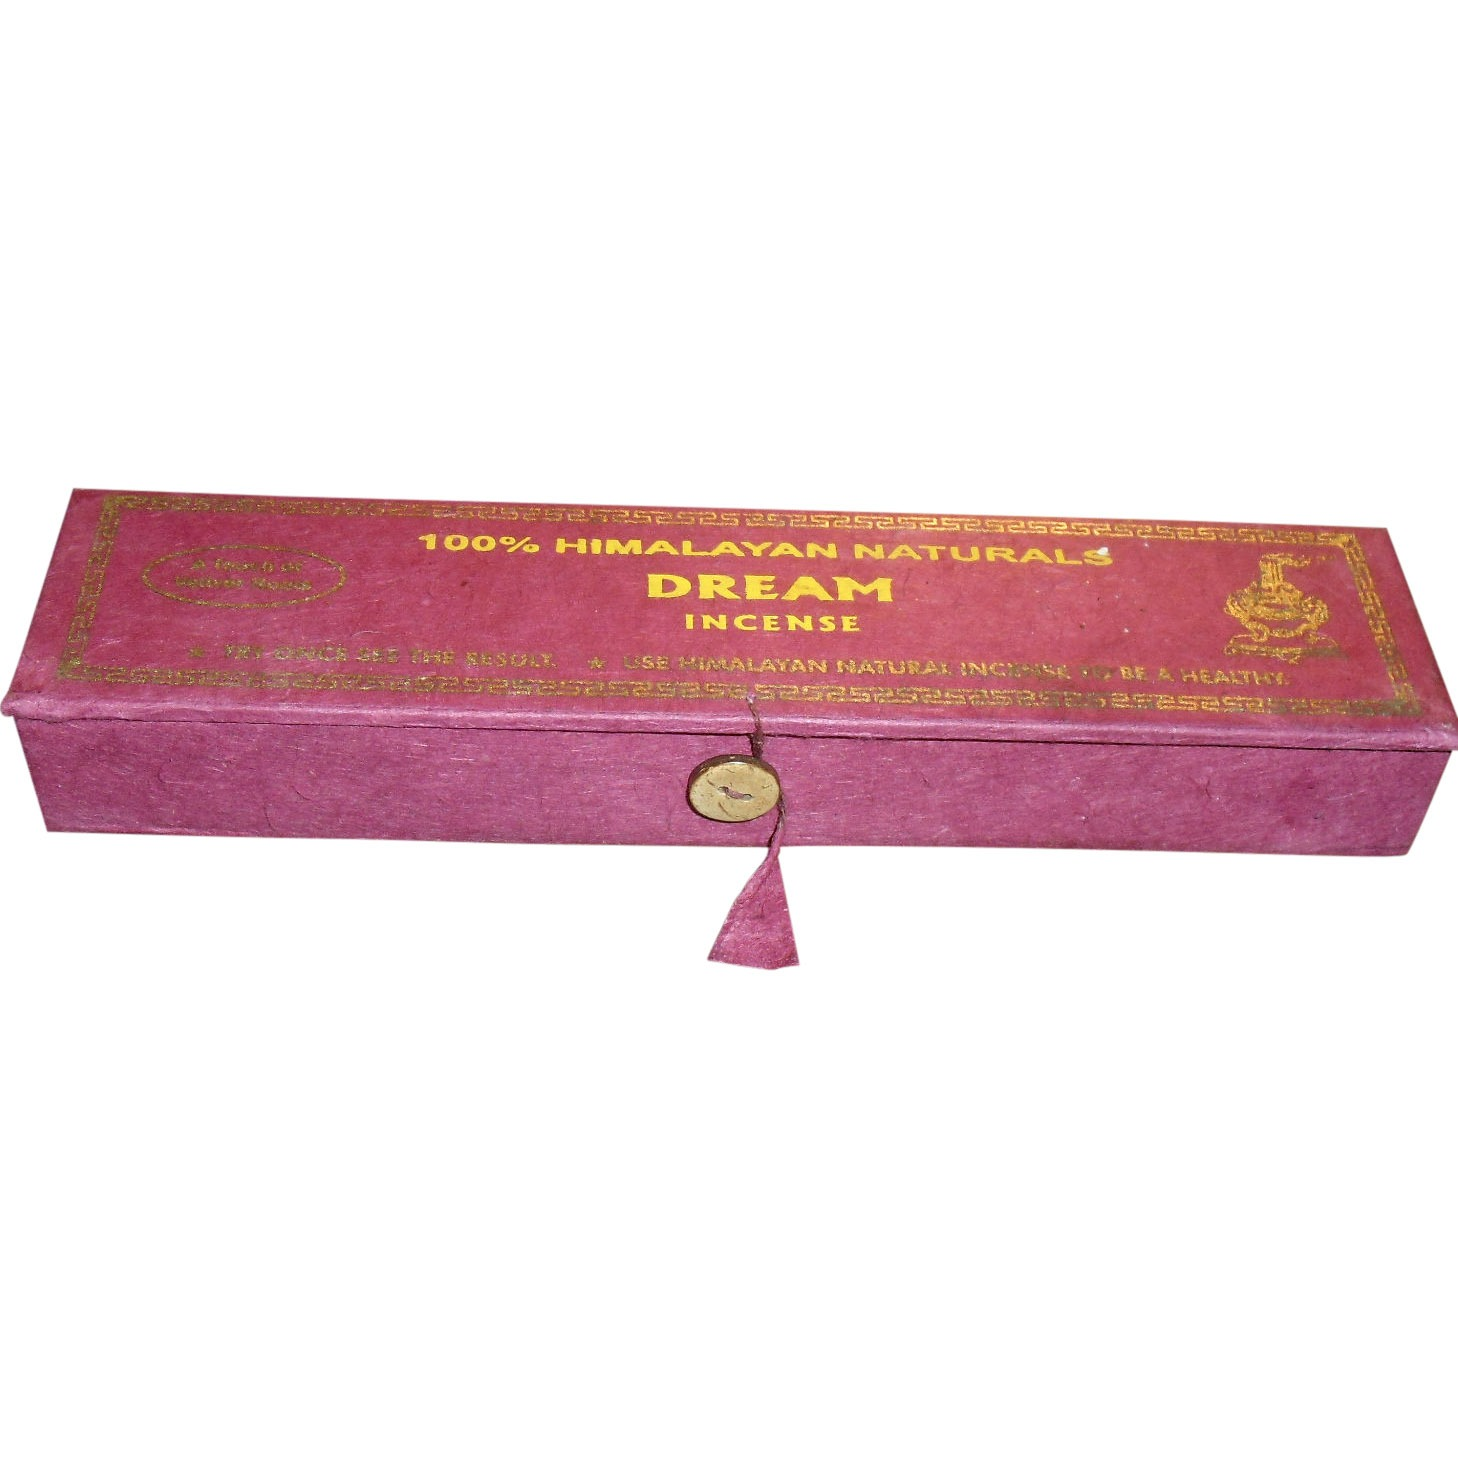 Tibetan Dream Incense